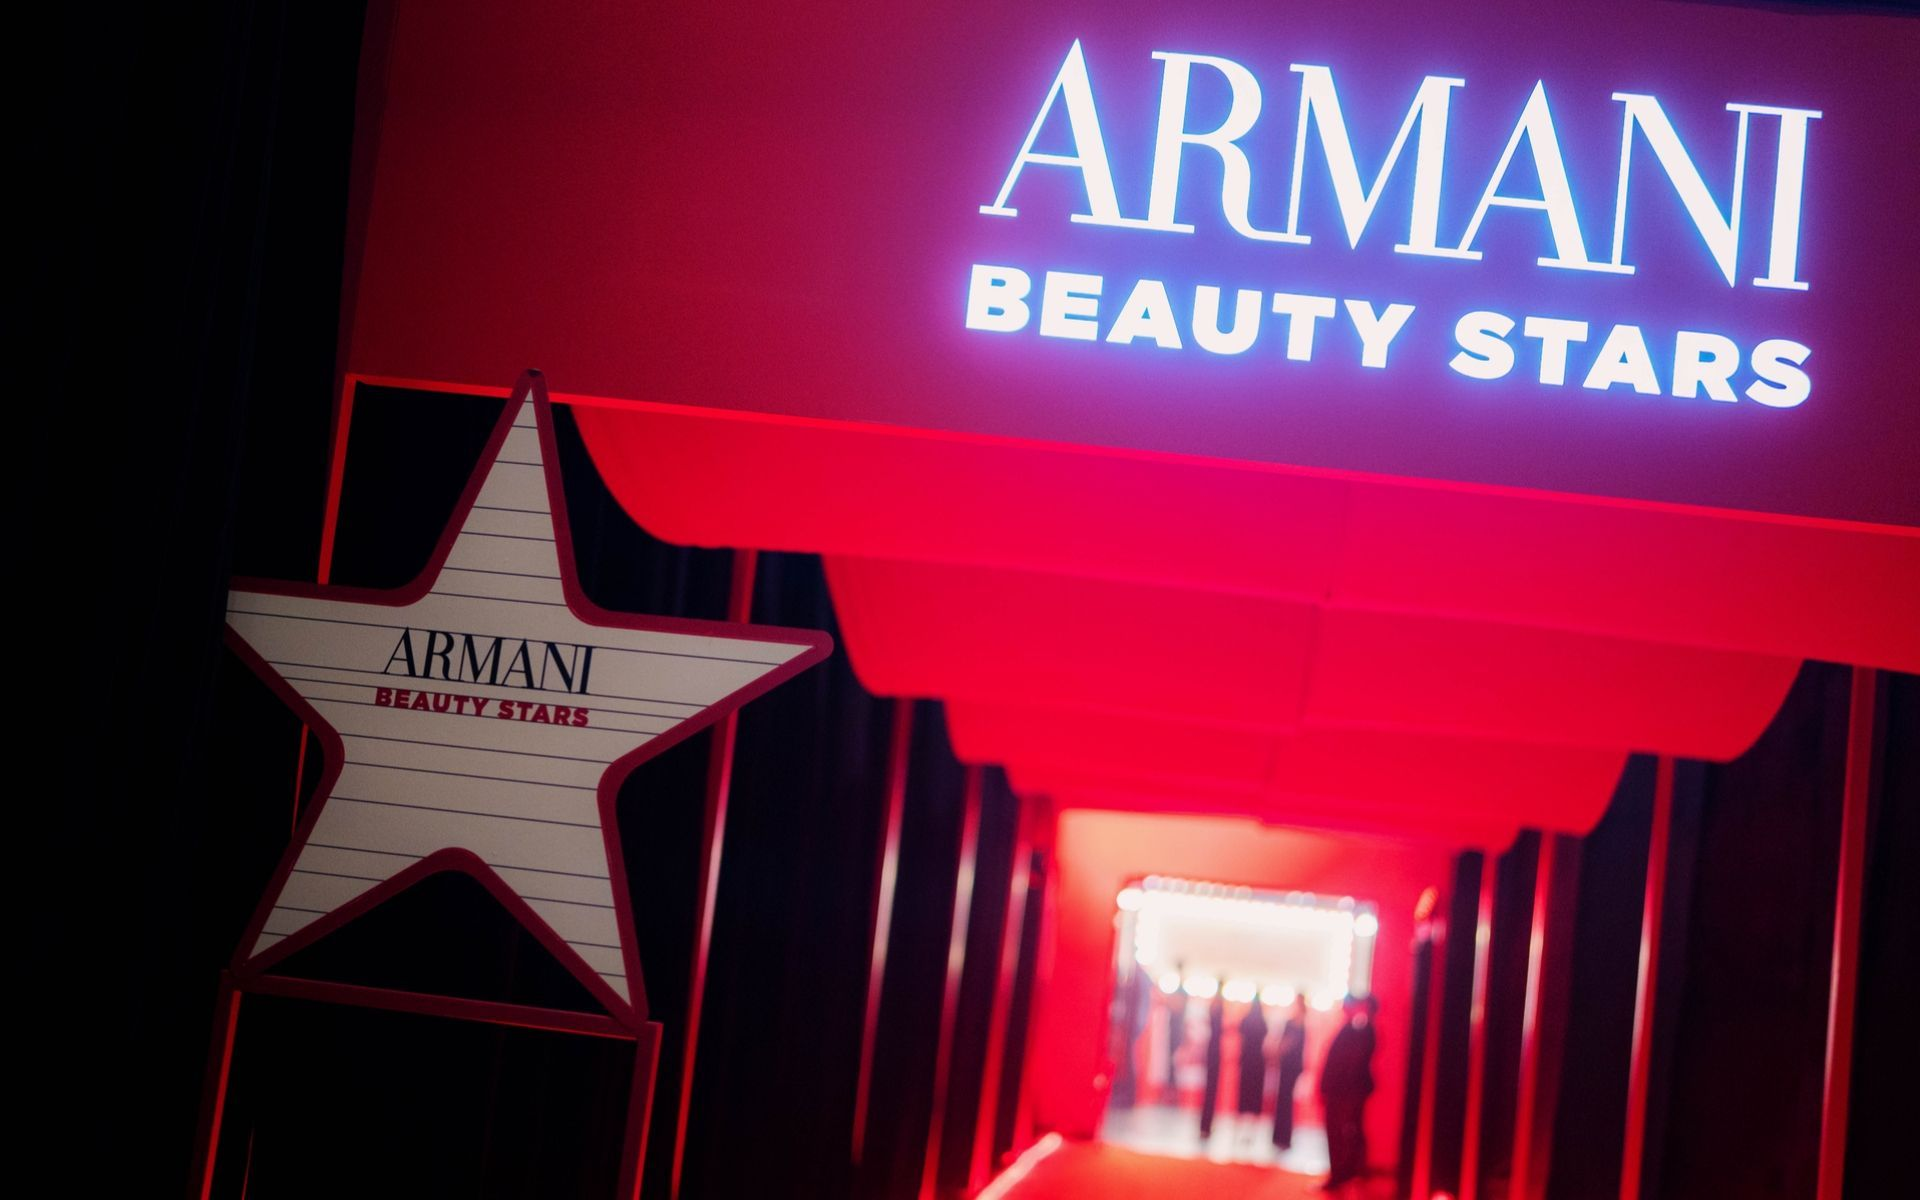 Red Carpet Roll-Out For Armani Beauty Stars